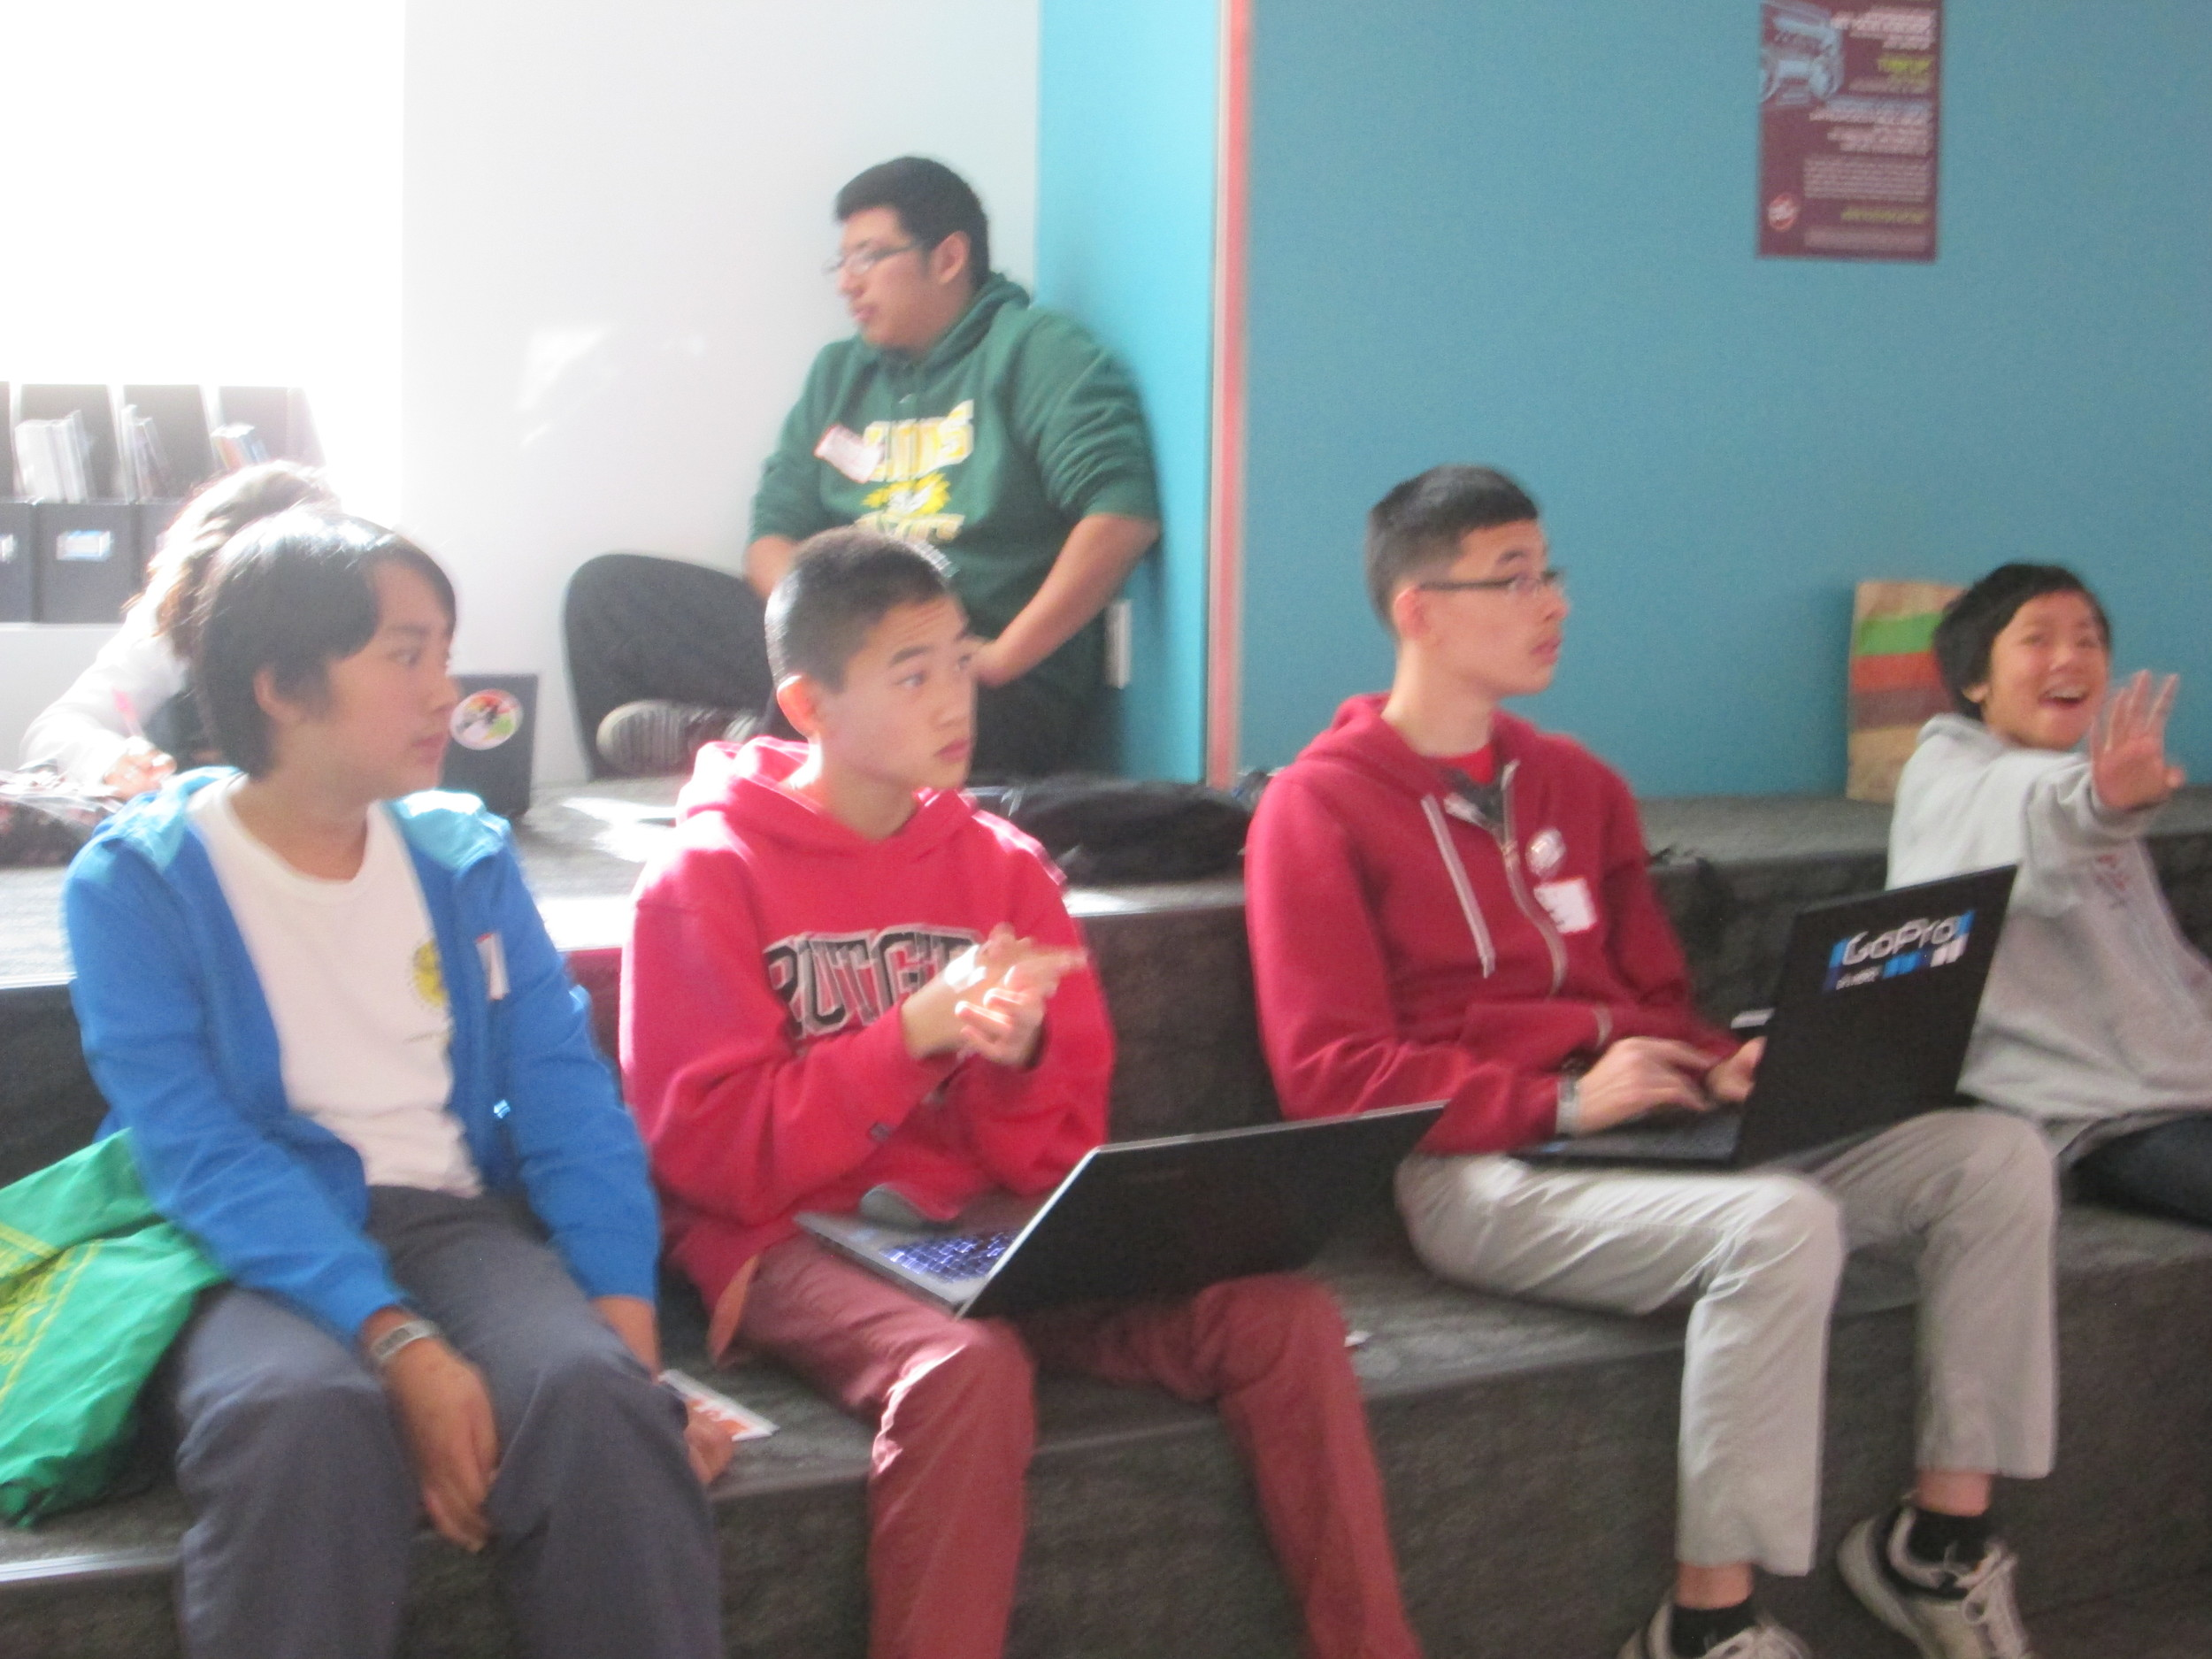 Student hackers learn coding principles behind game design